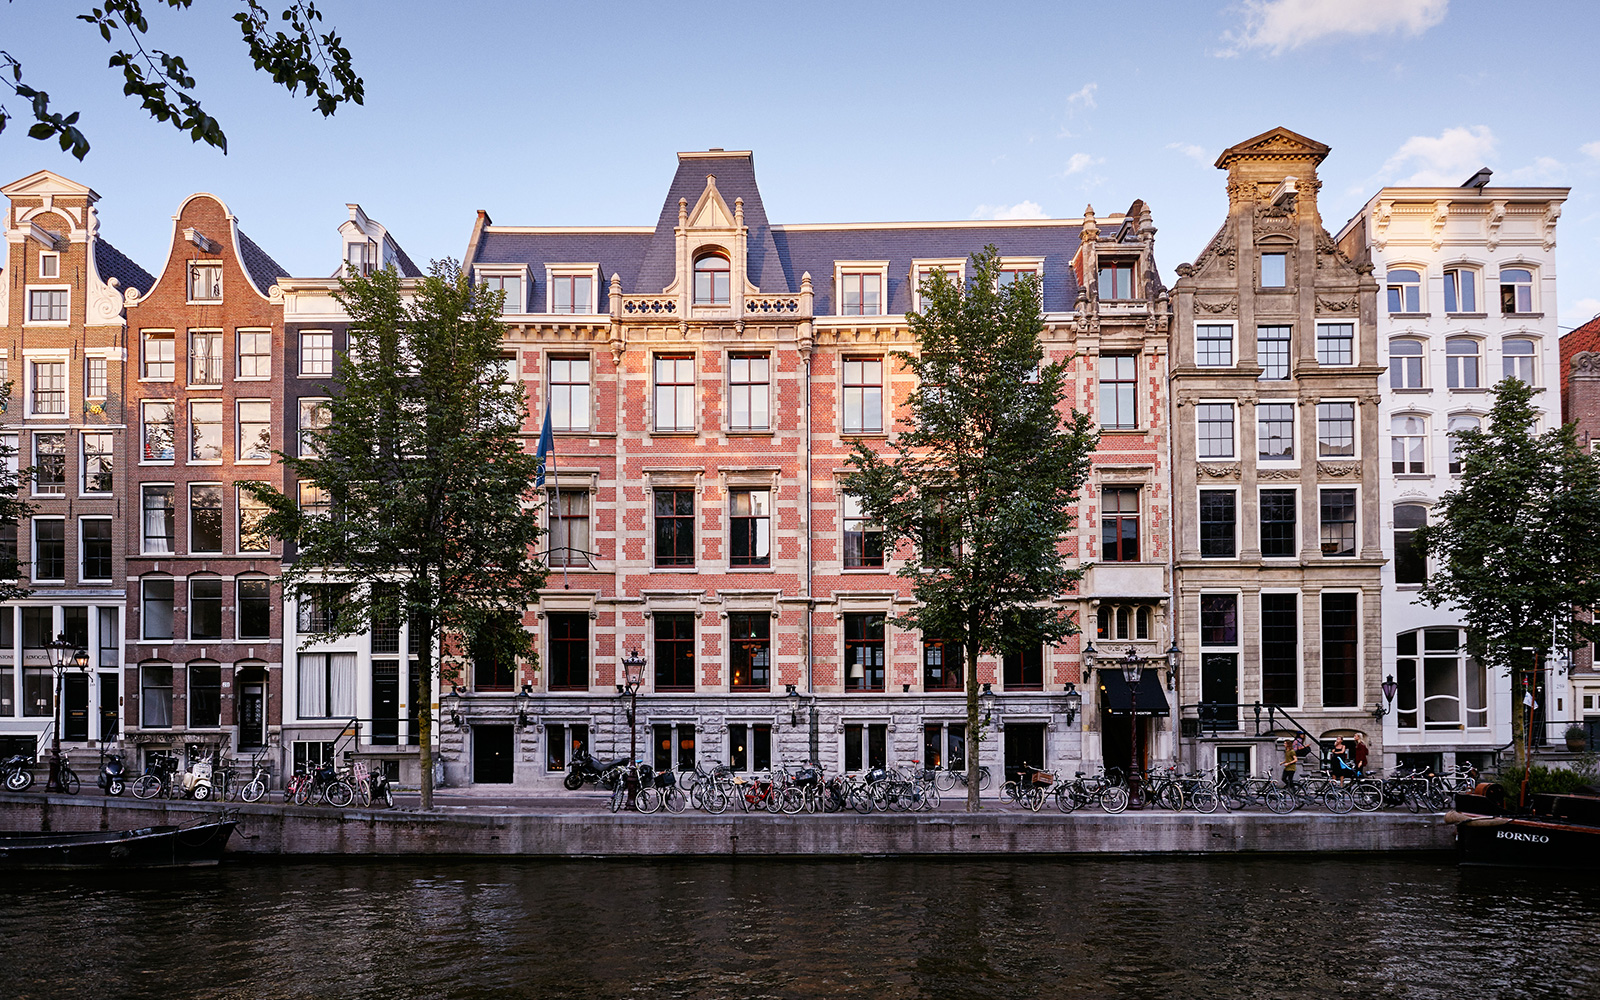 16 Hotels With Five-Star Style for Less Than $200 a Night: Hoxton in Amsterdam